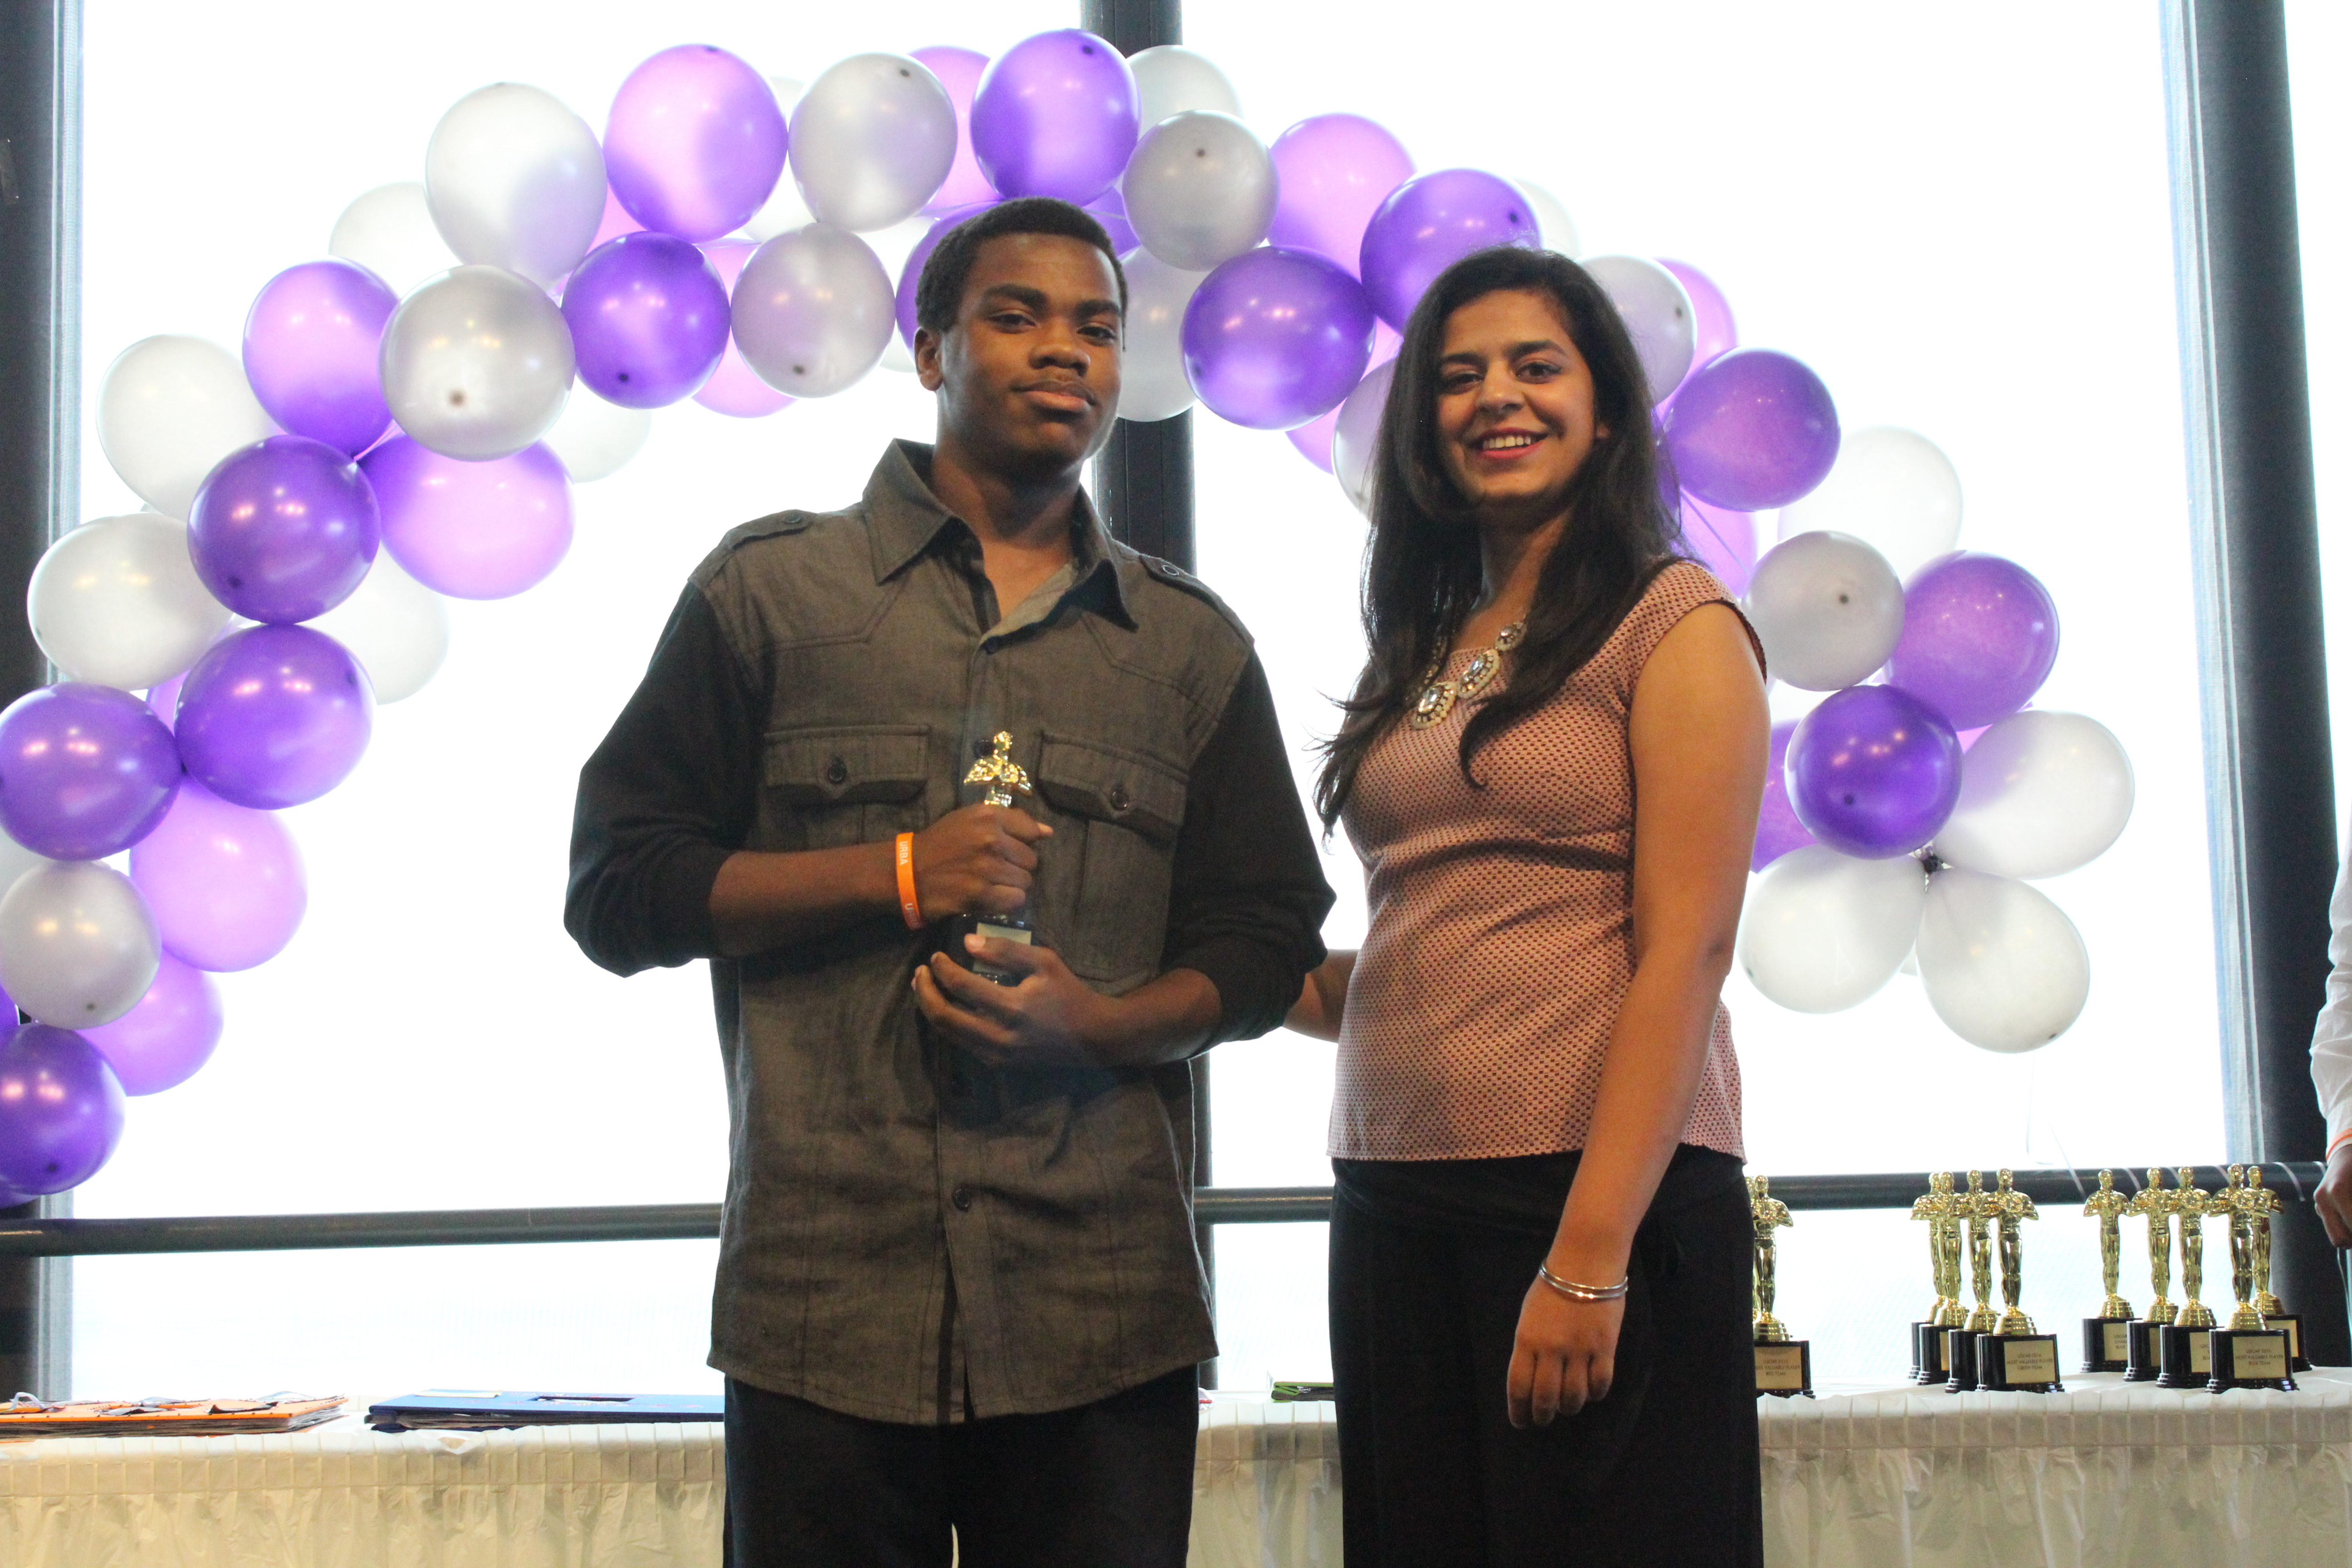 Urban Scholars student also received an USCARS award for being outstanding on the afternoon activities!